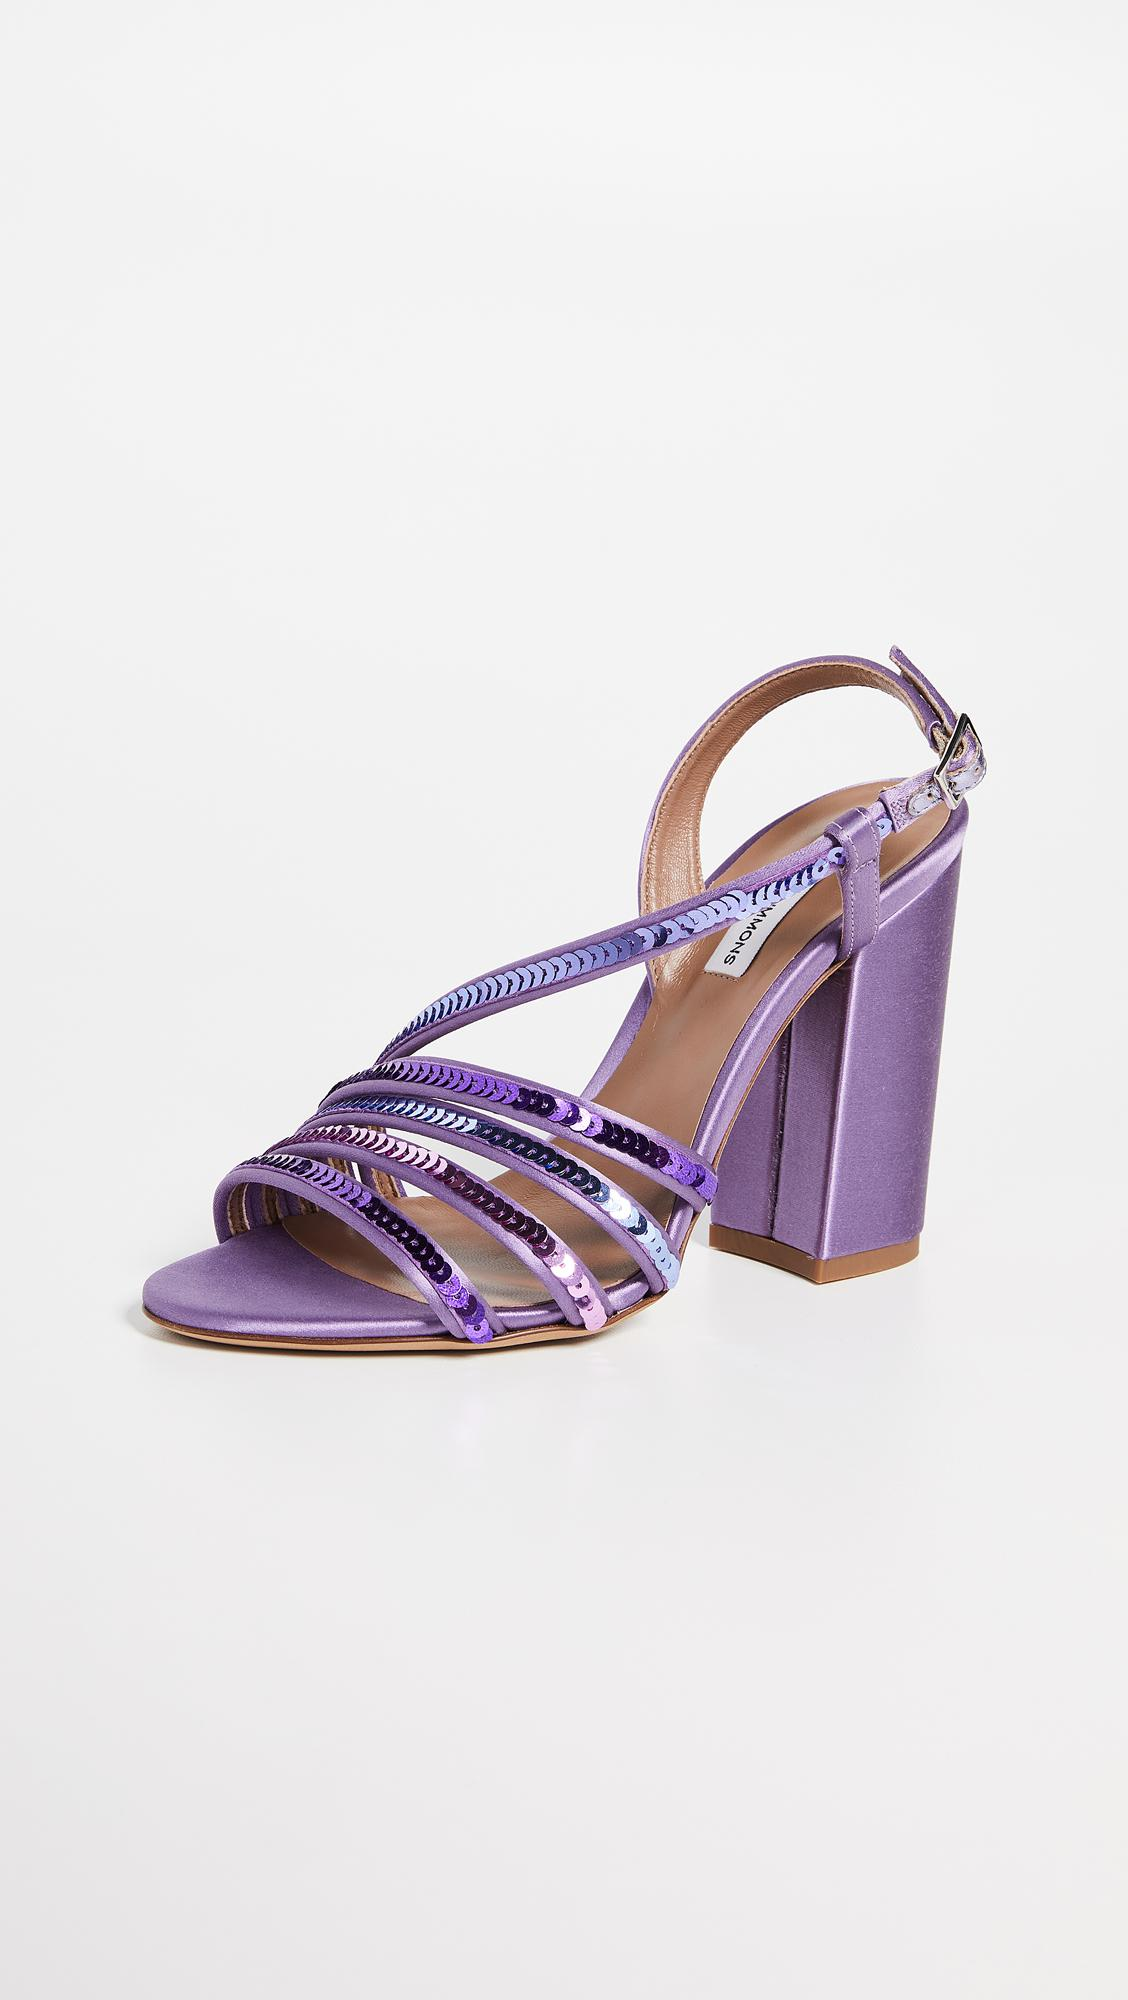 da6439076e7a Lyst - Tabitha Simmons Viola Sandals in Purple